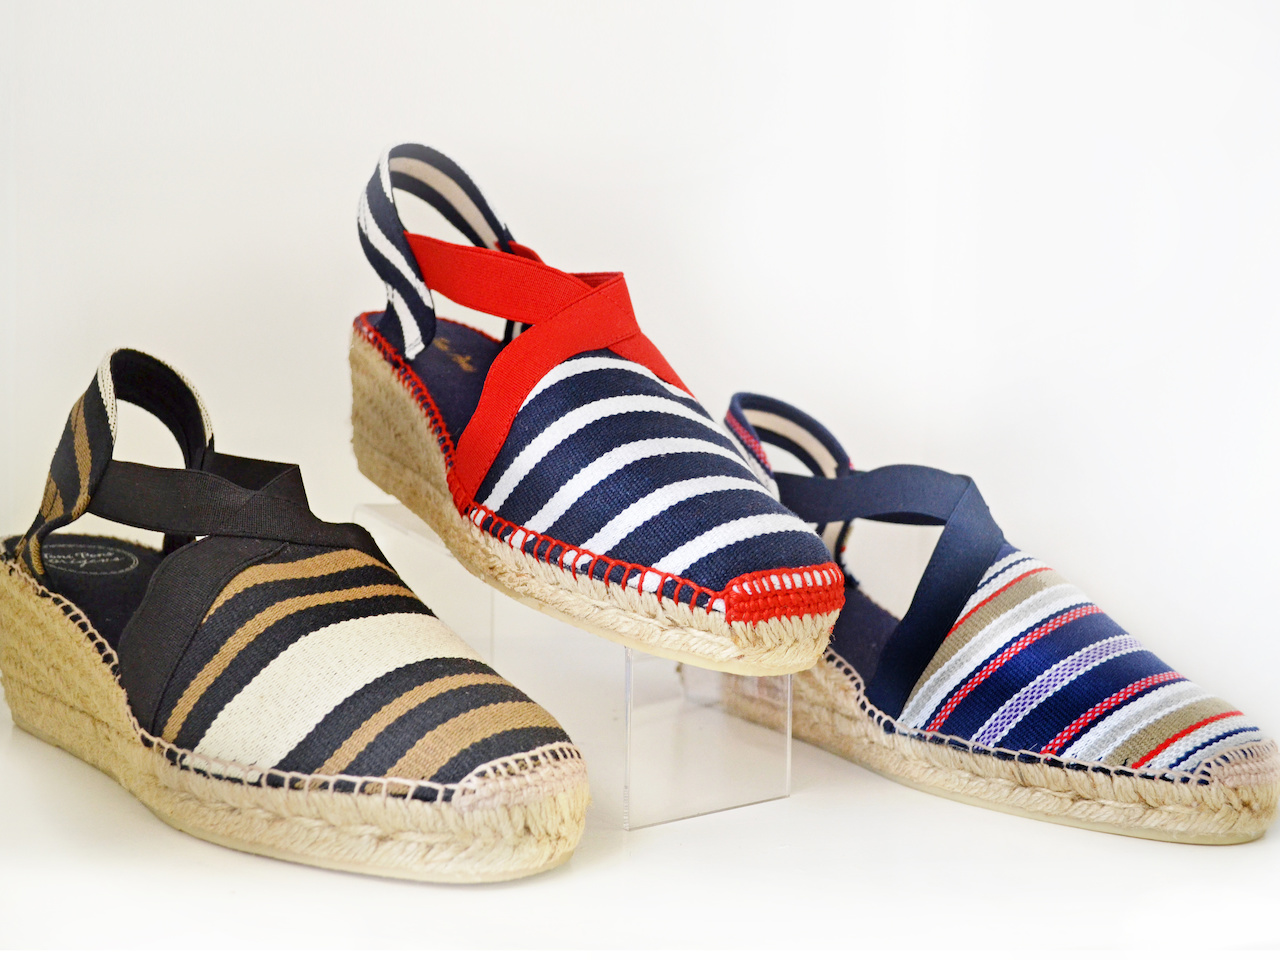 Grab the perfect pair of Toni Pons for summer!